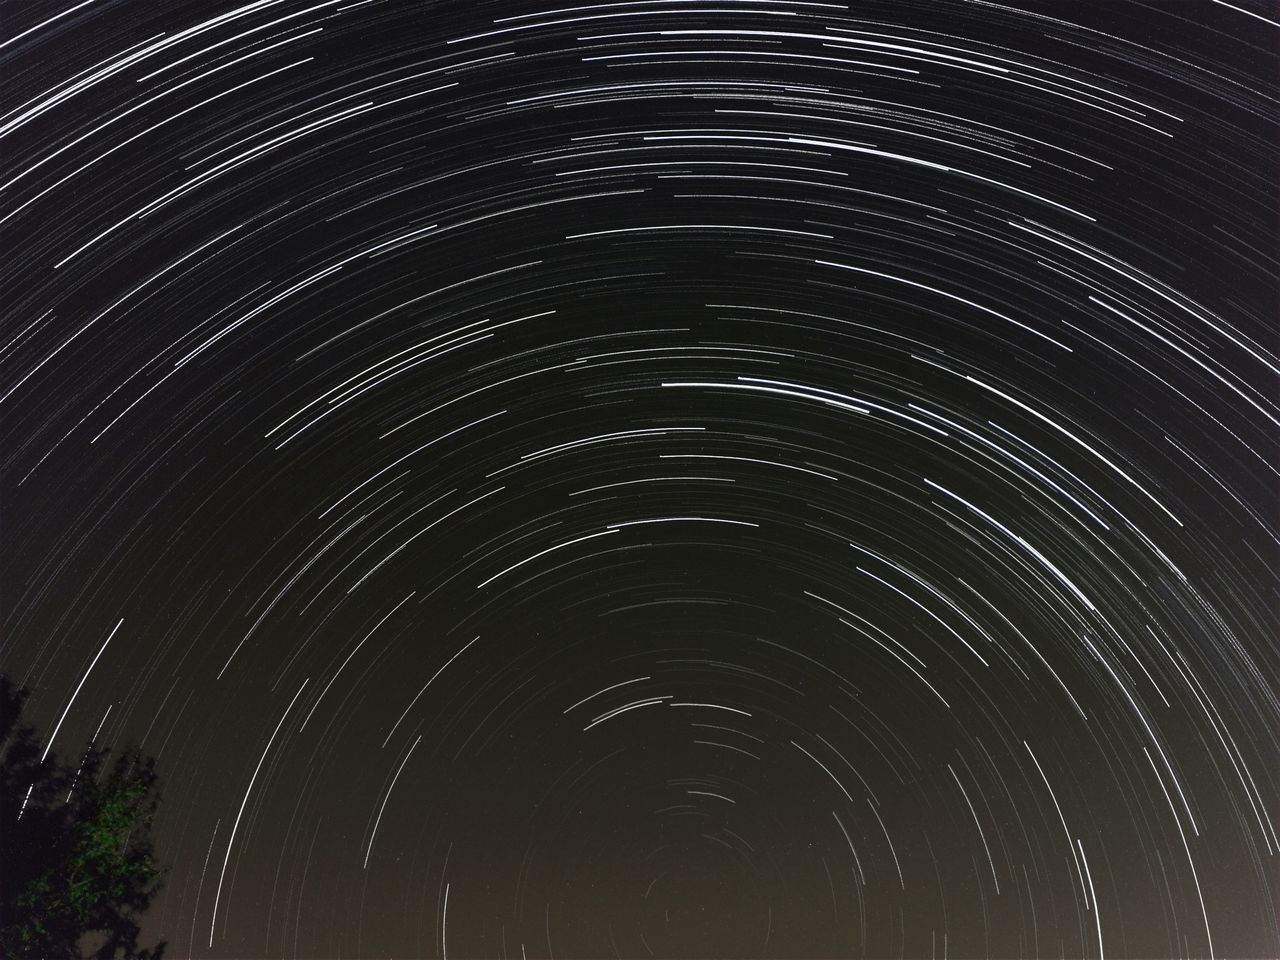 night, nature, star trail, no people, long exposure, astronomy, motion, star - space, beauty in nature, outdoors, scenics, tranquility, concentric, galaxy